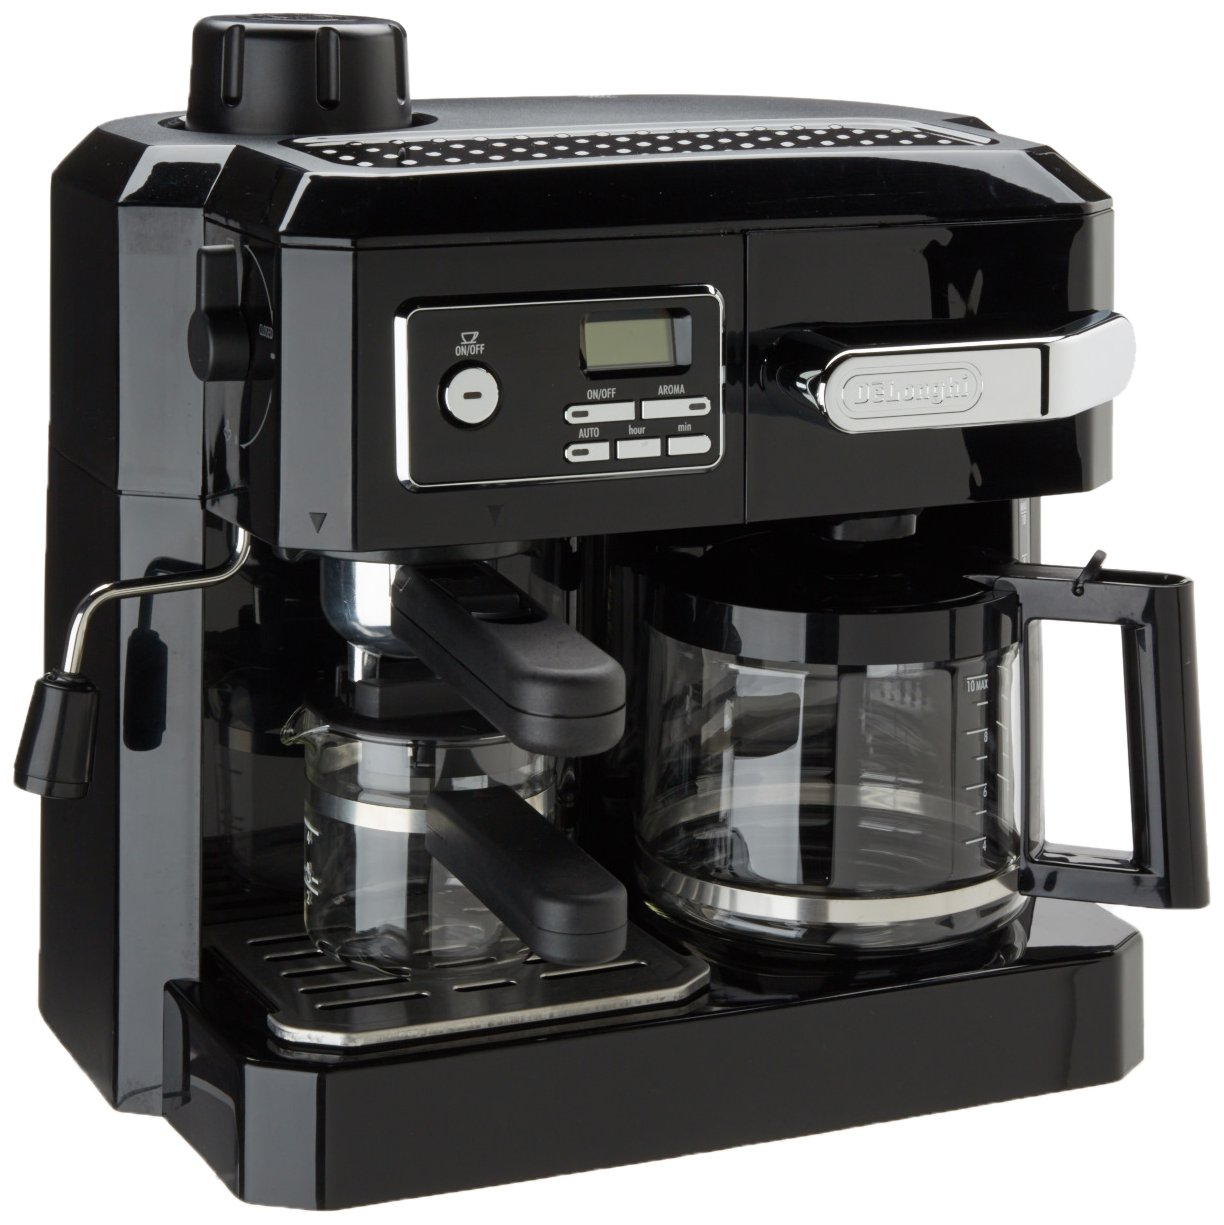 Drip Coffee Maker With Timer : DeLonghi BCO320T Combination Espresso and Drip Coffee- Black eBay